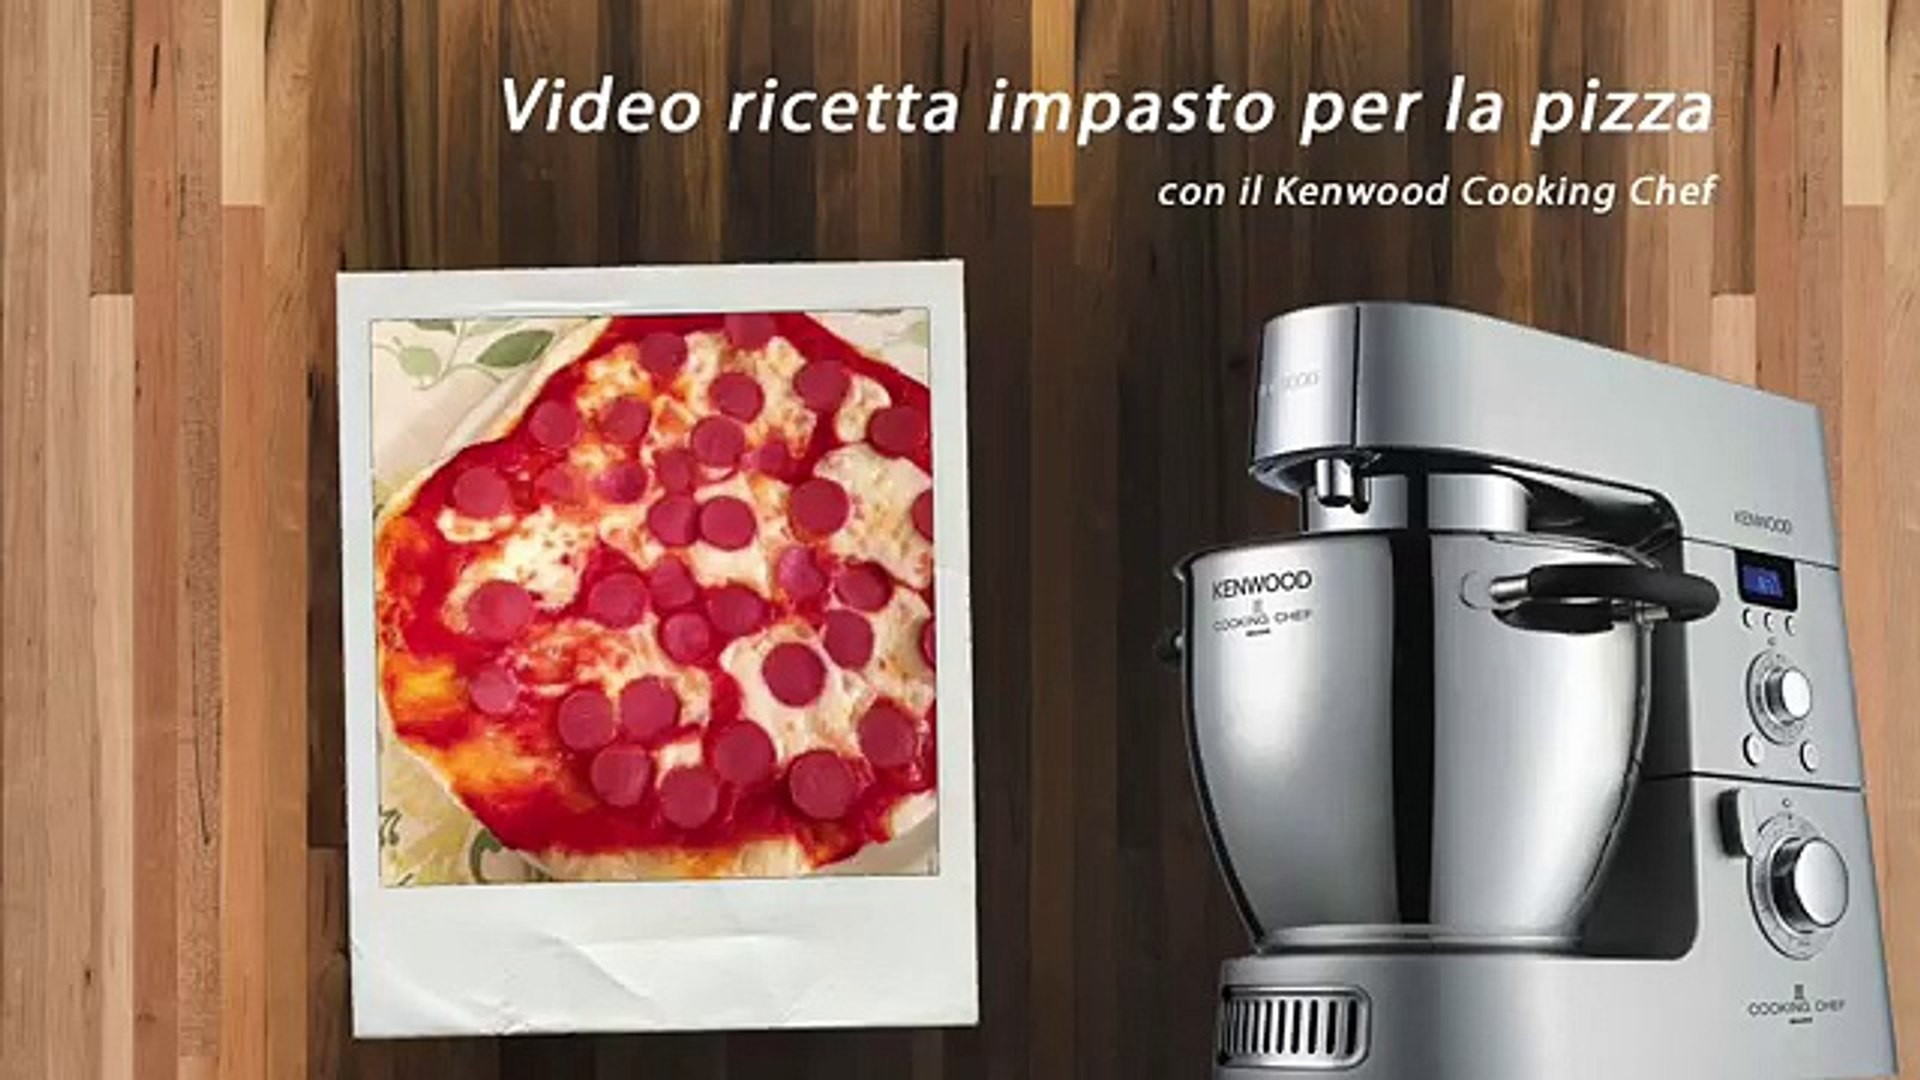 Ricetta Pizza Kenwood Chef.Video Ricette Kenwood Impasto Base Pizza Con Kenwood Cooking Chef Video Dailymotion